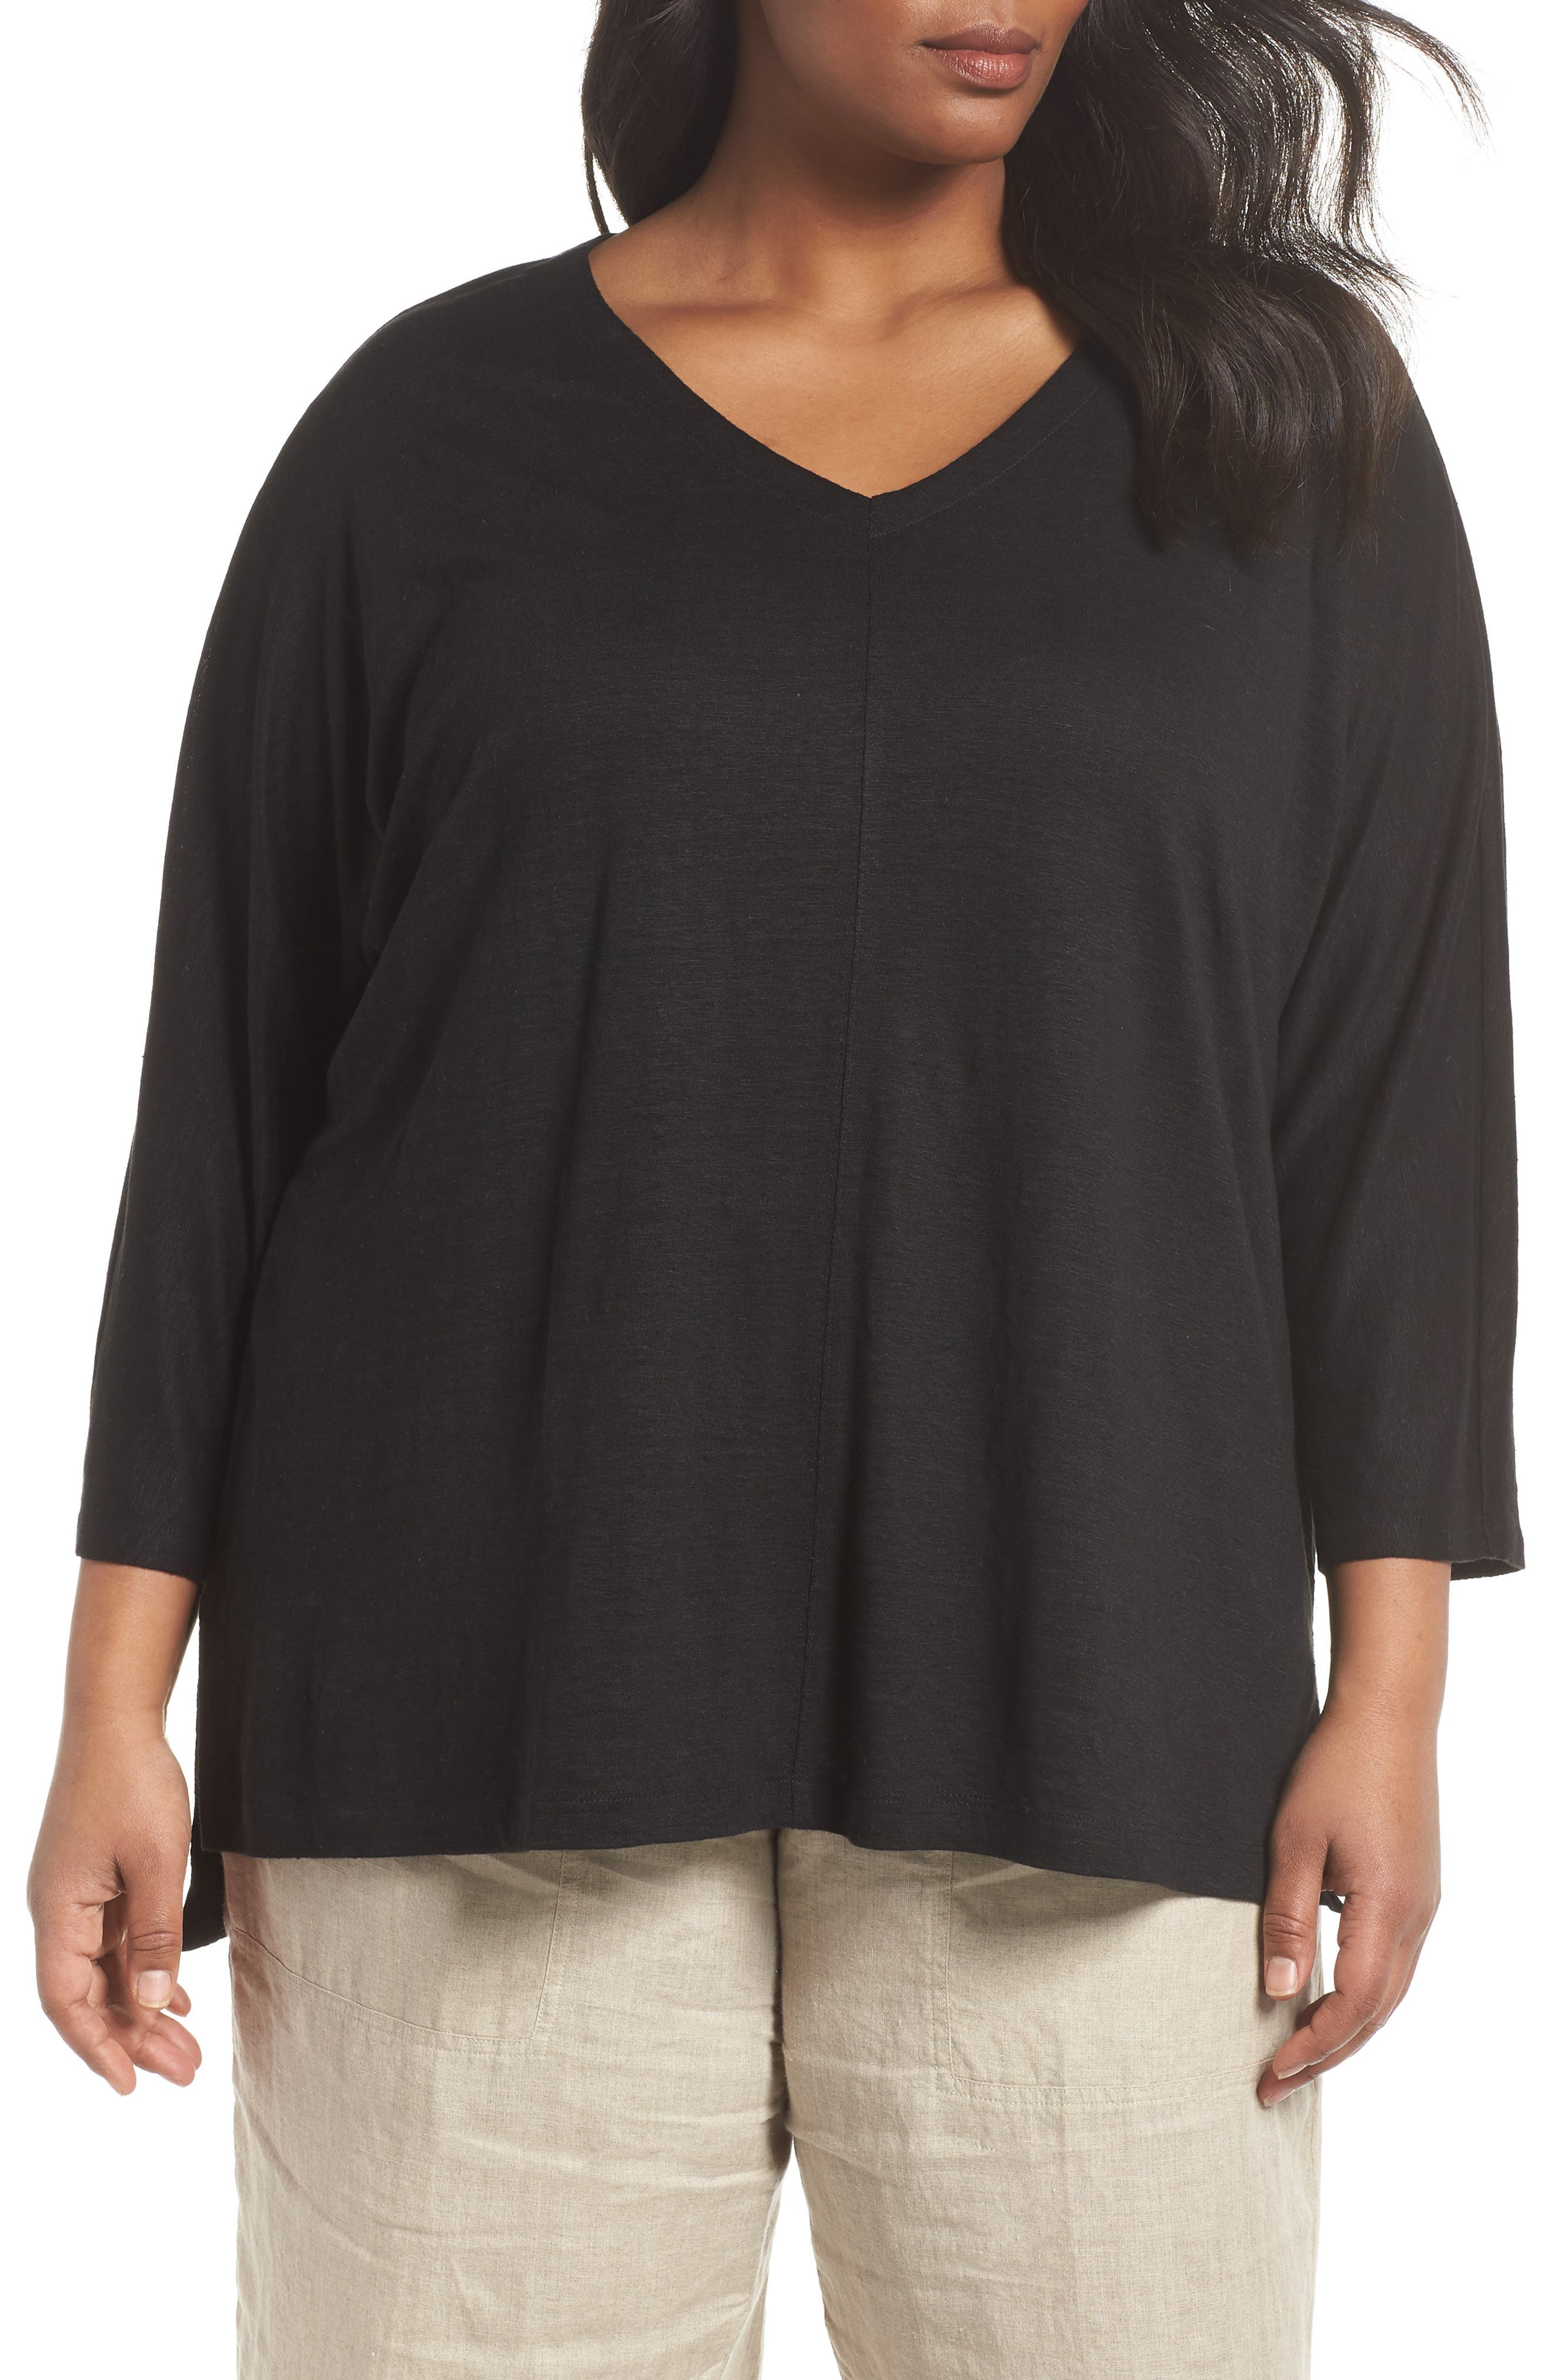 Alternate Image 1 Selected - Eileen Fisher Organic Linen Top (Plus Size)